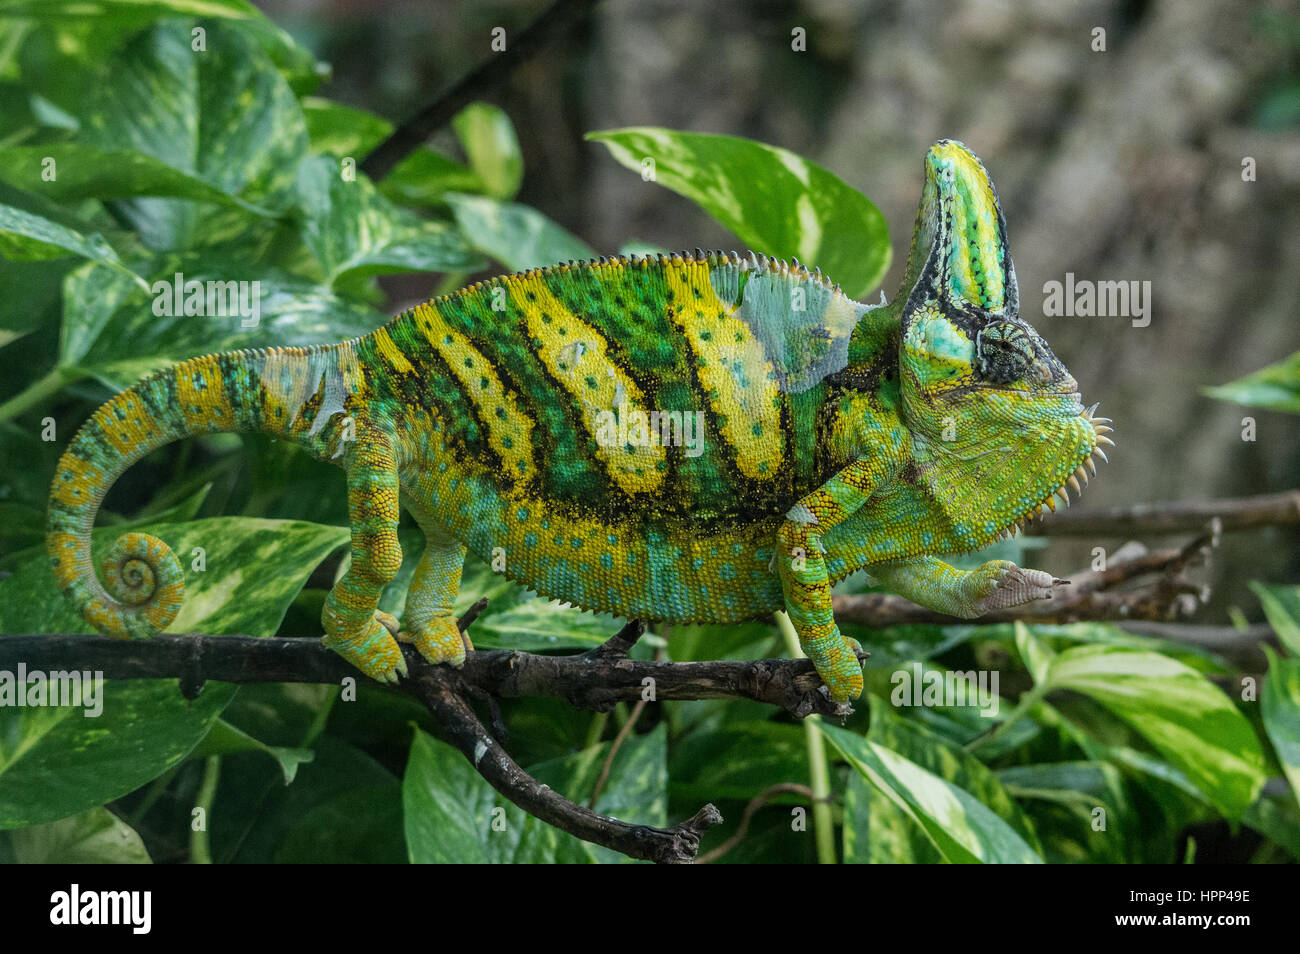 big chameleon emerges from the green leaves of a tree, horizontal image Camaleonte - Stock Image